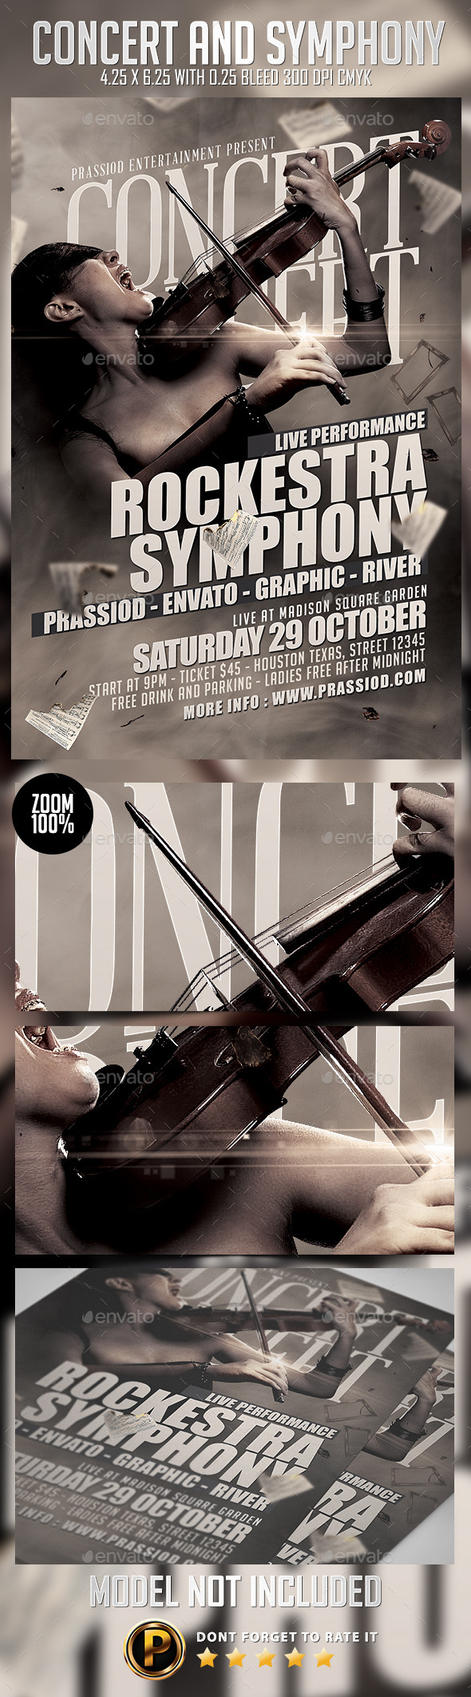 Concert And Symphony Flyer Template by prassetyo